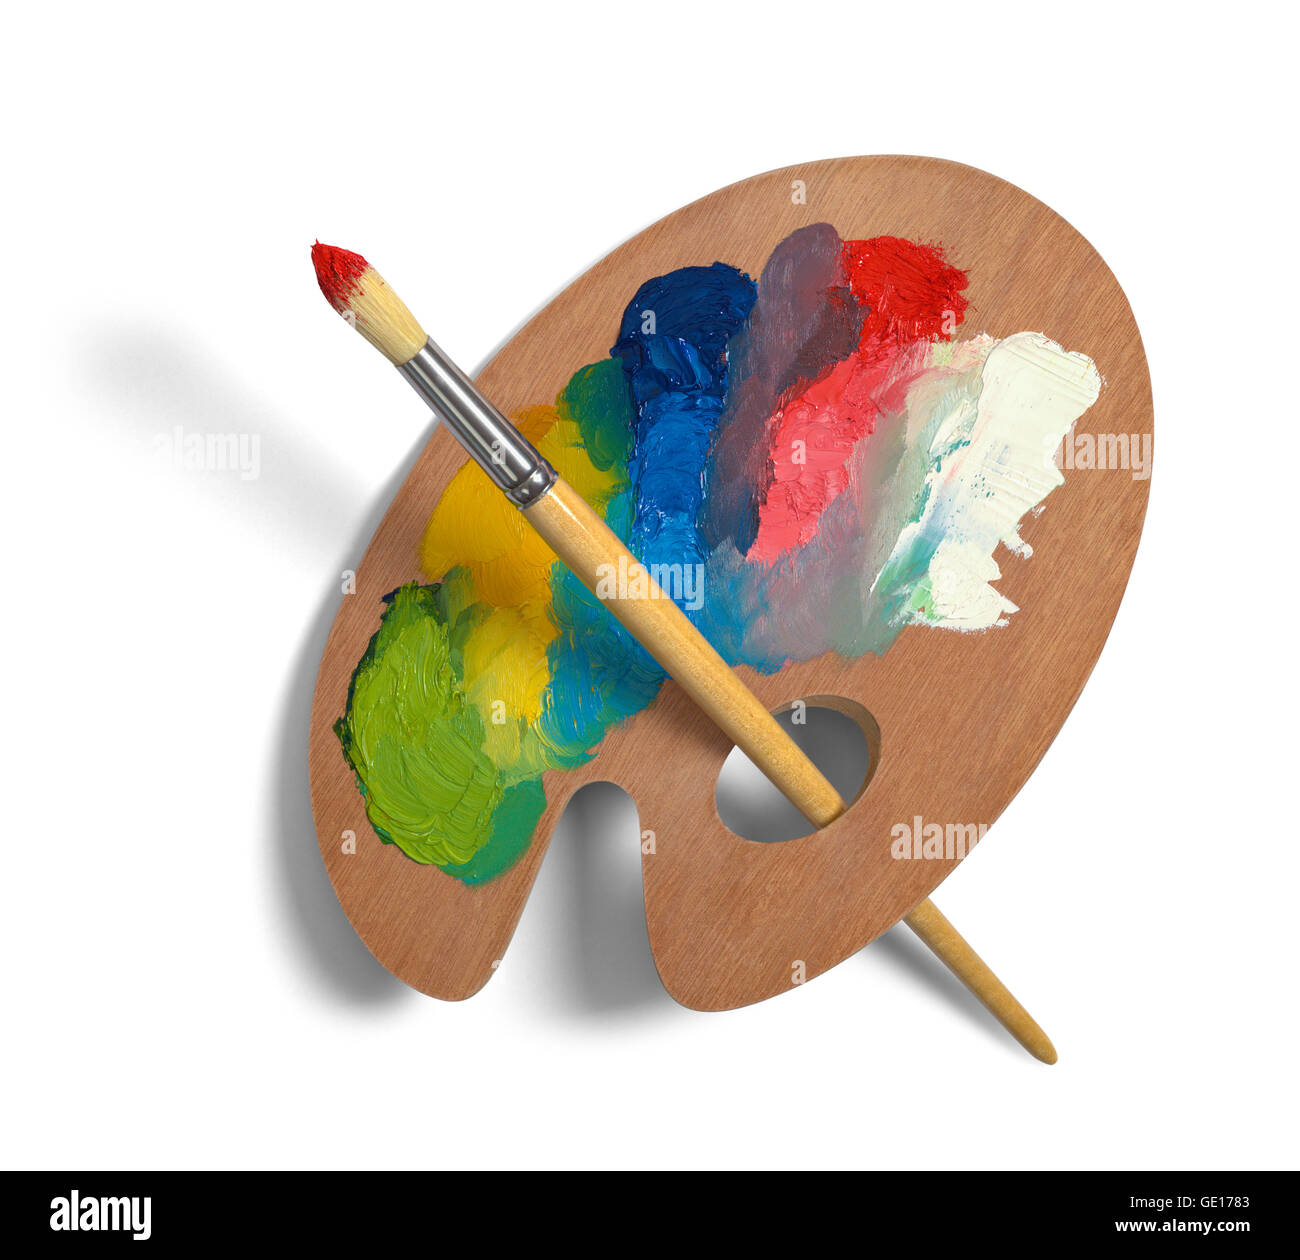 Painters Palette with Mixed Paints and Brush Isolated on White Background. - Stock Image